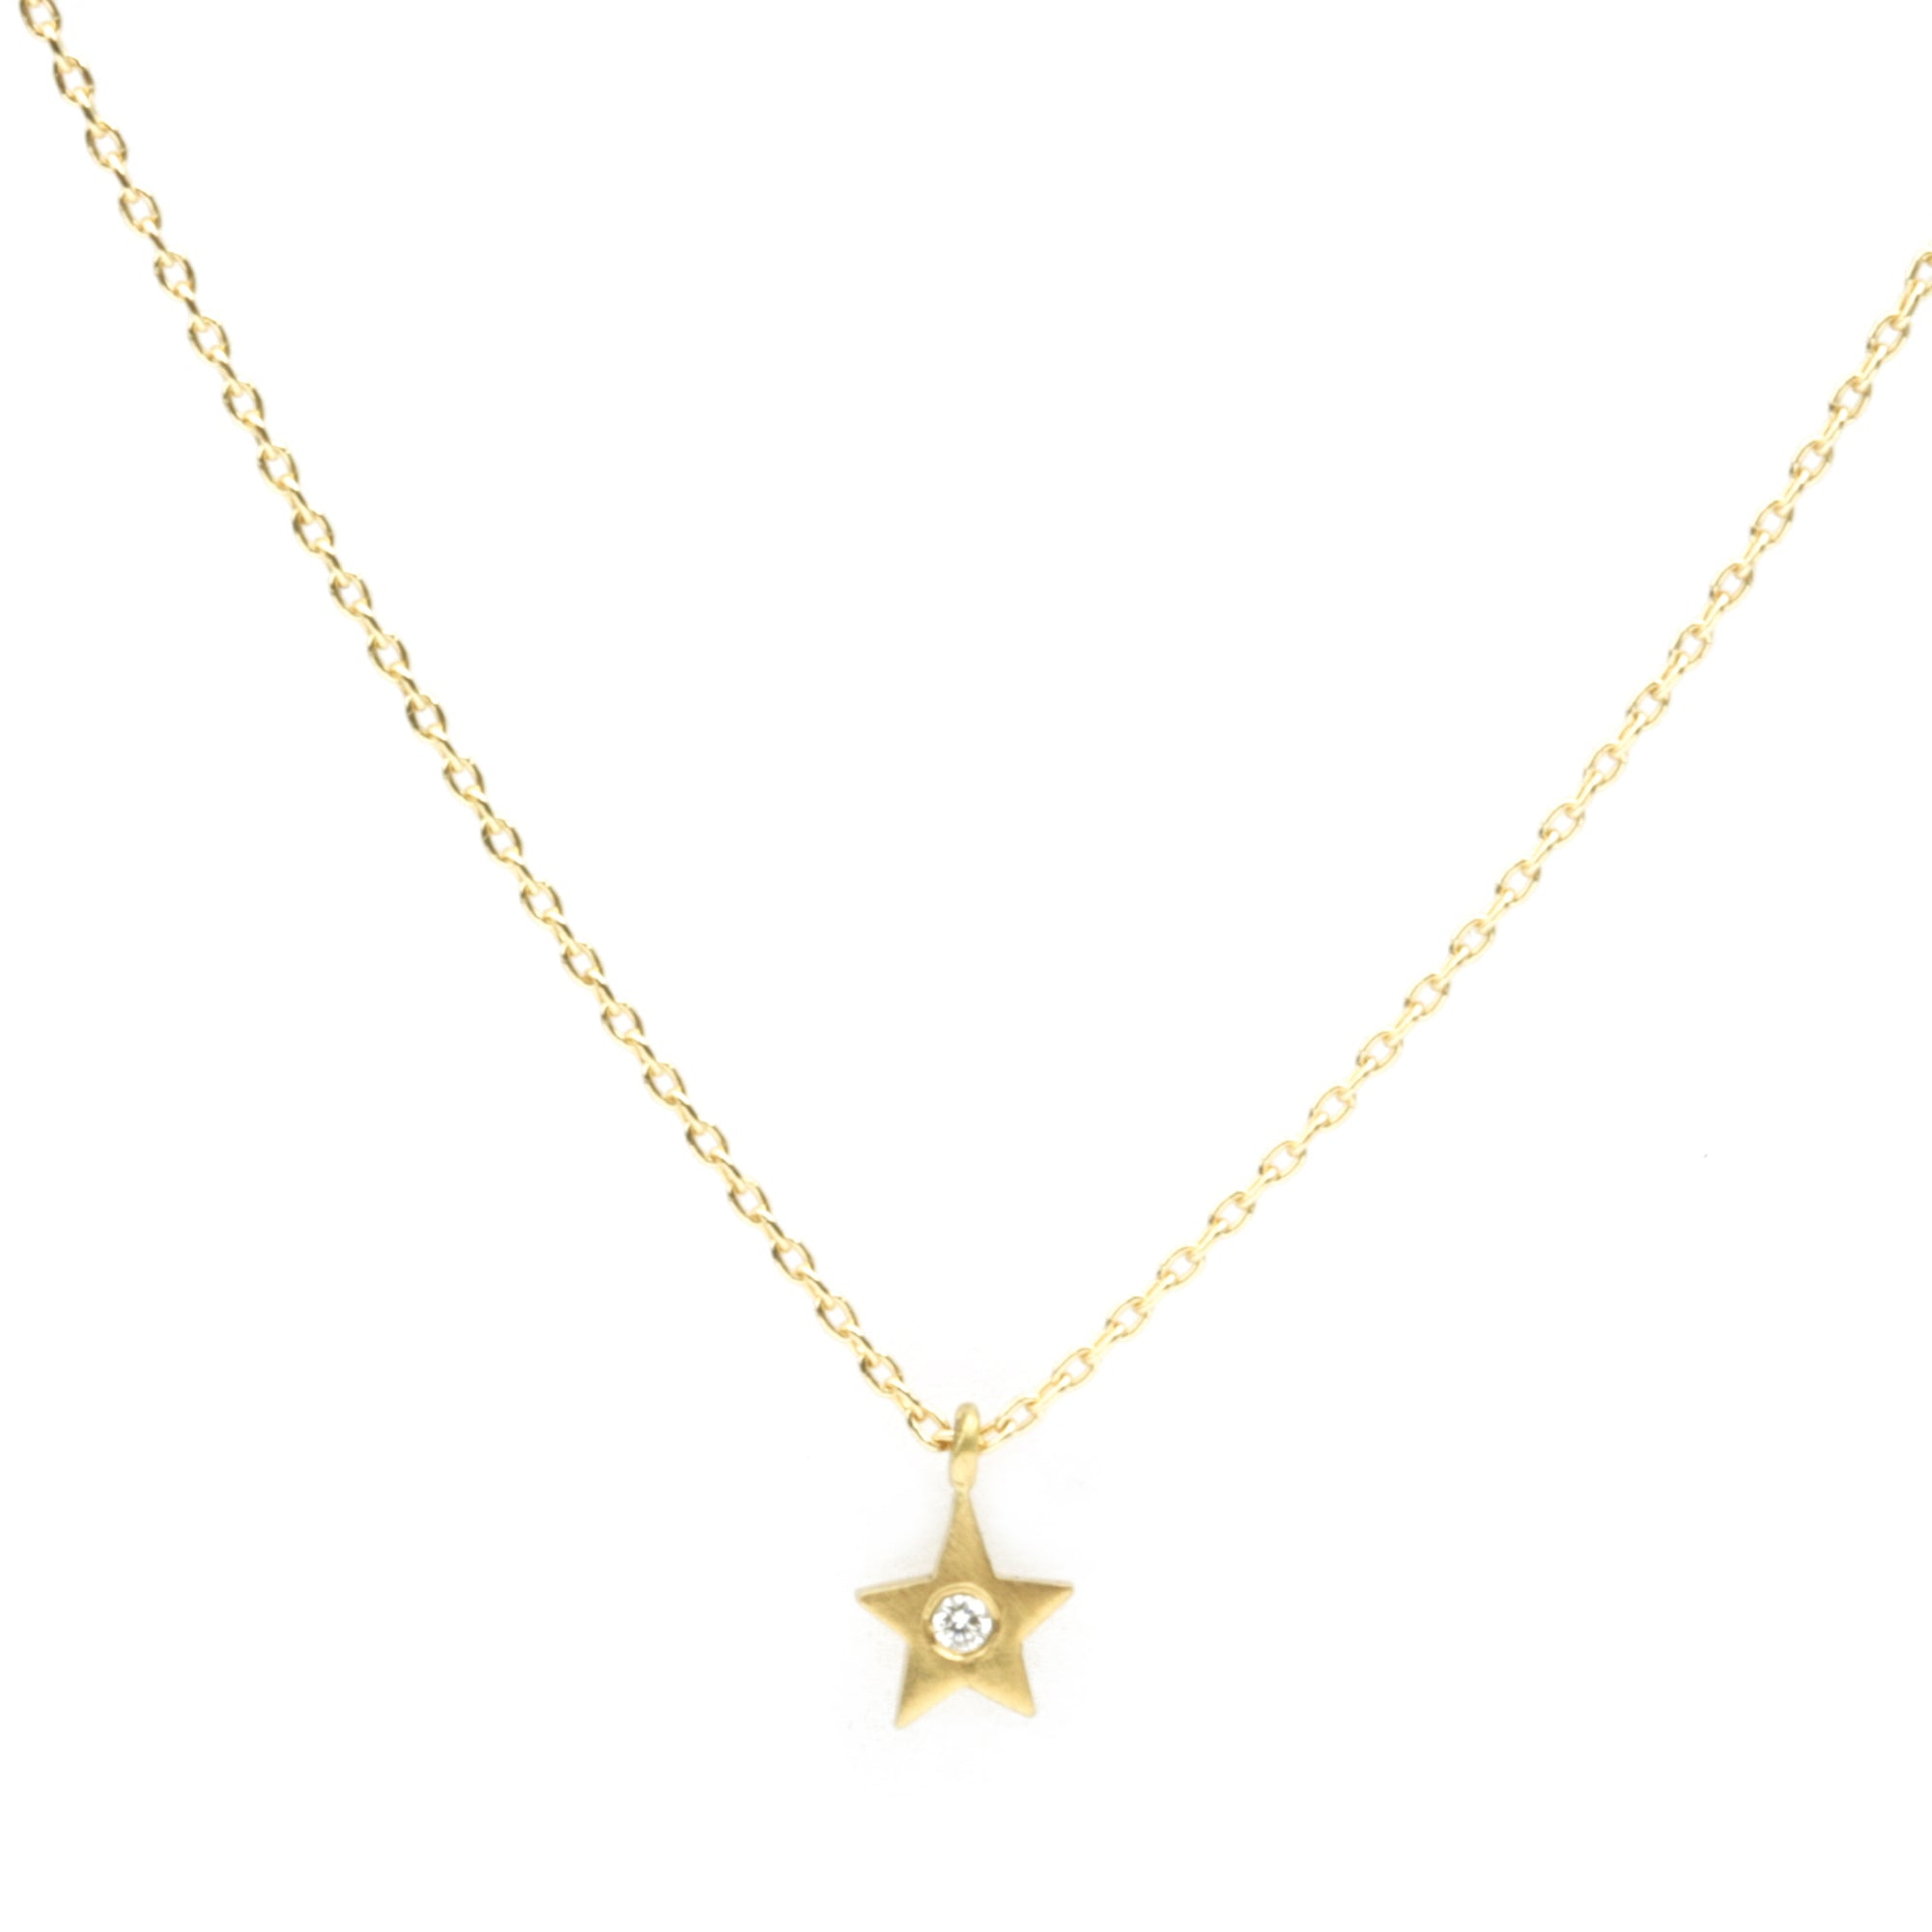 Micro Star with diamond